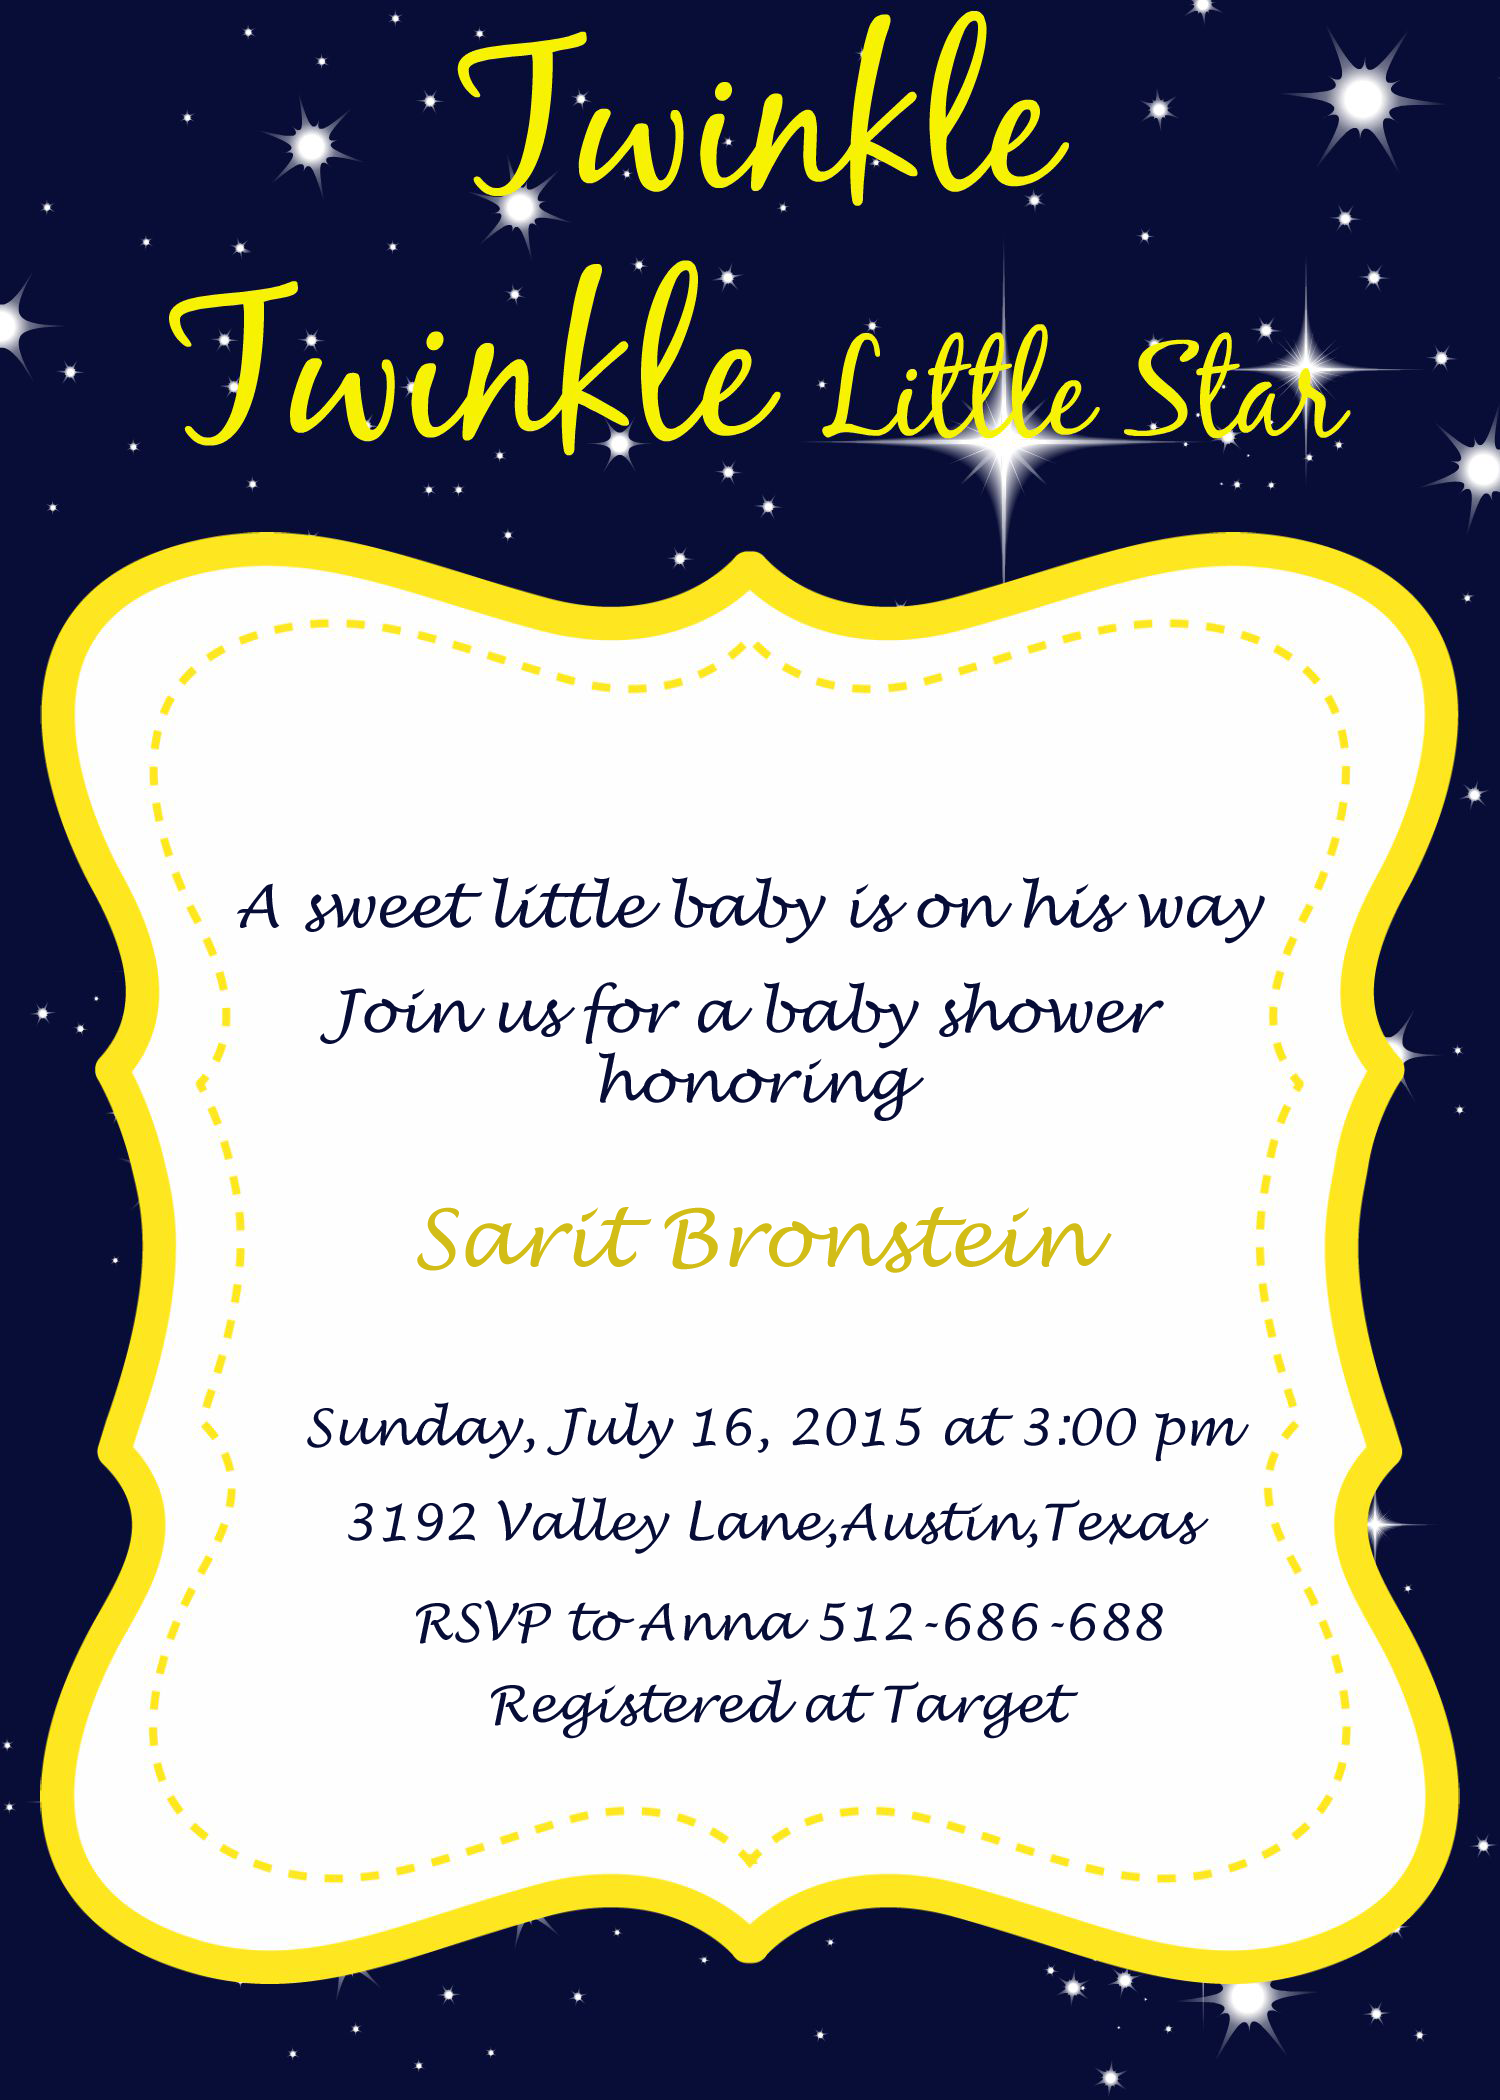 Twinkle twinkle baby shower ideas my practical baby shower guide personalized twinkle twinkle baby shower invitation by 2rabbitsprintenjoy filmwisefo Gallery